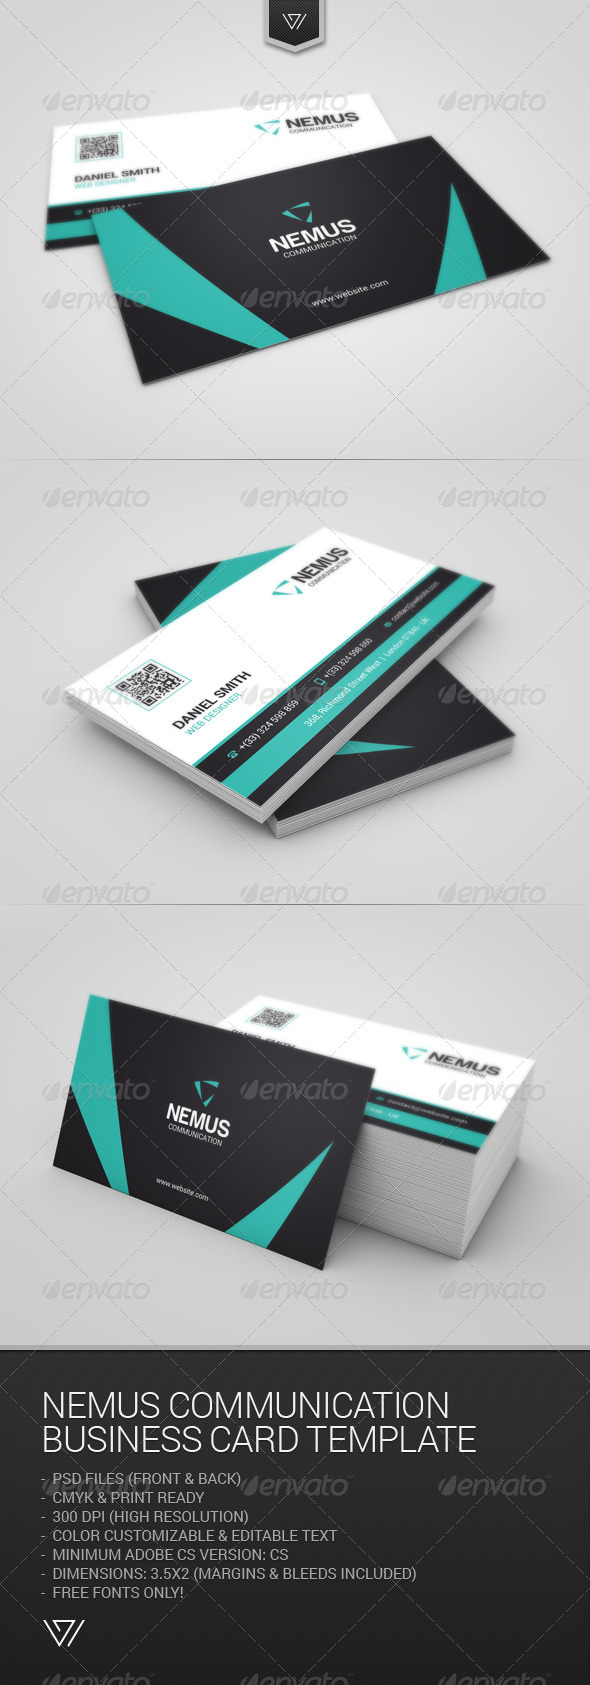 GraphicRiver Nemus Communication Business Card 7829457